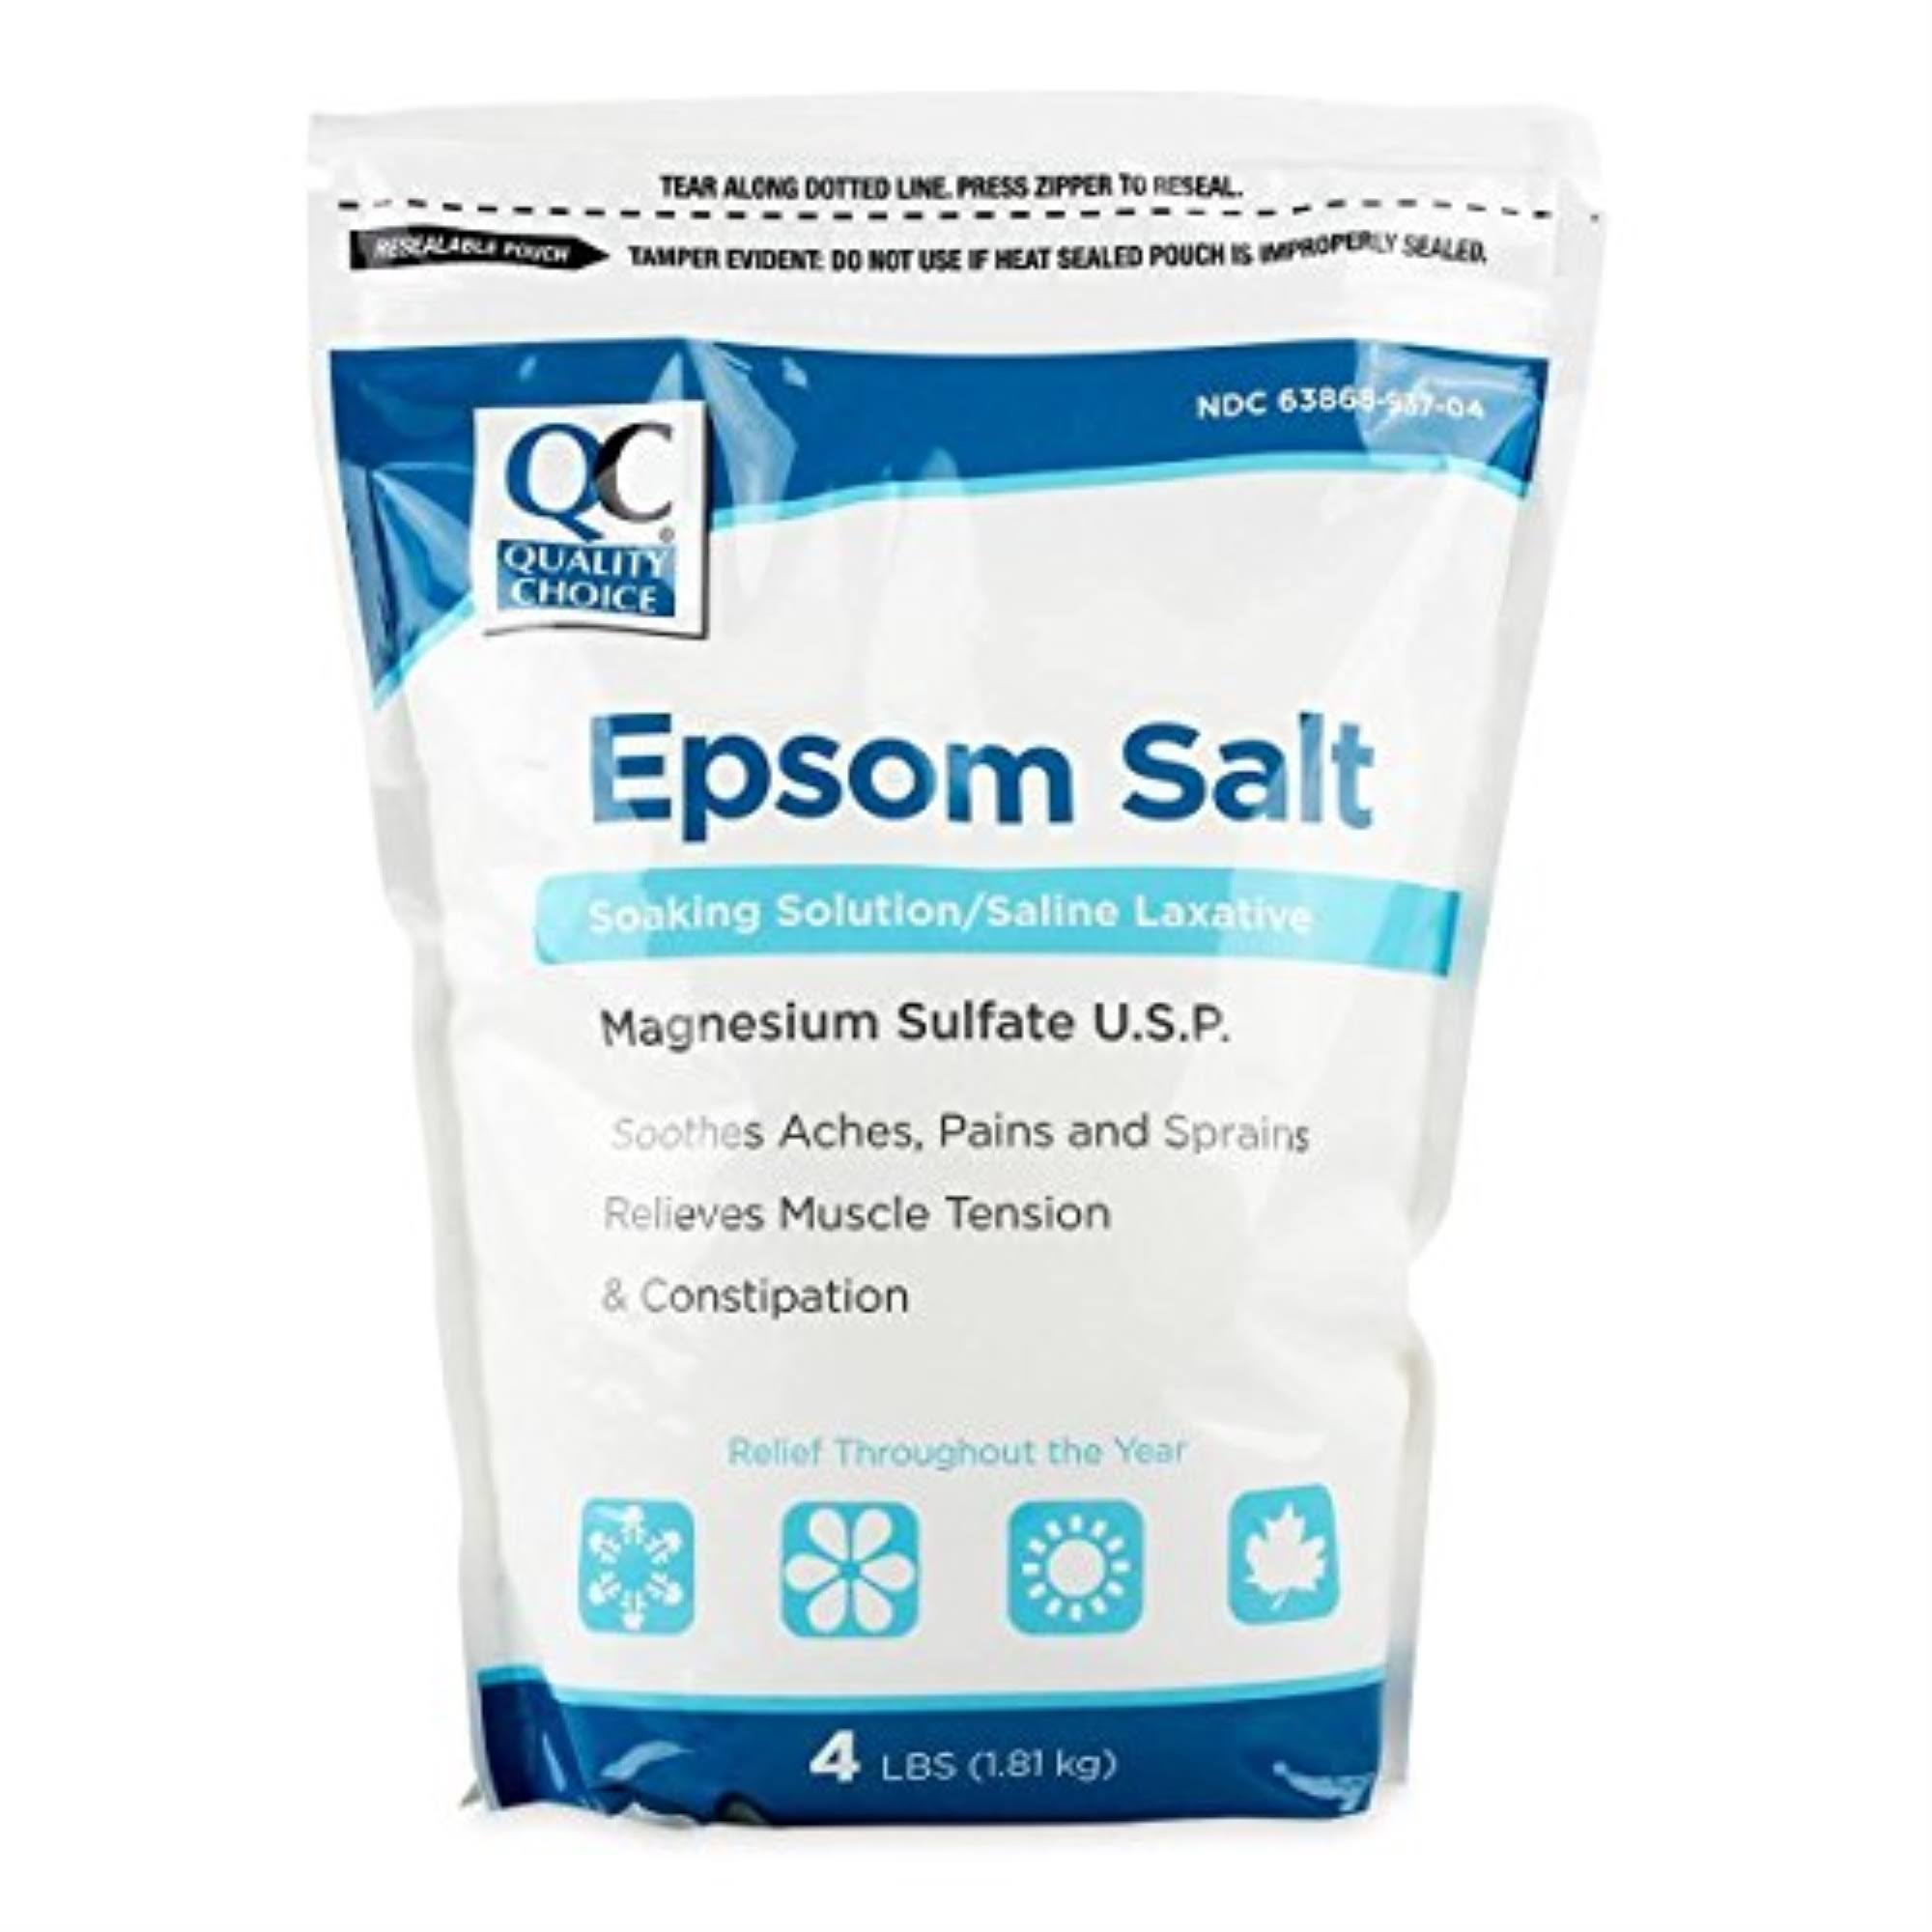 Quality Choice Epsom Salt 4 Pound Bag